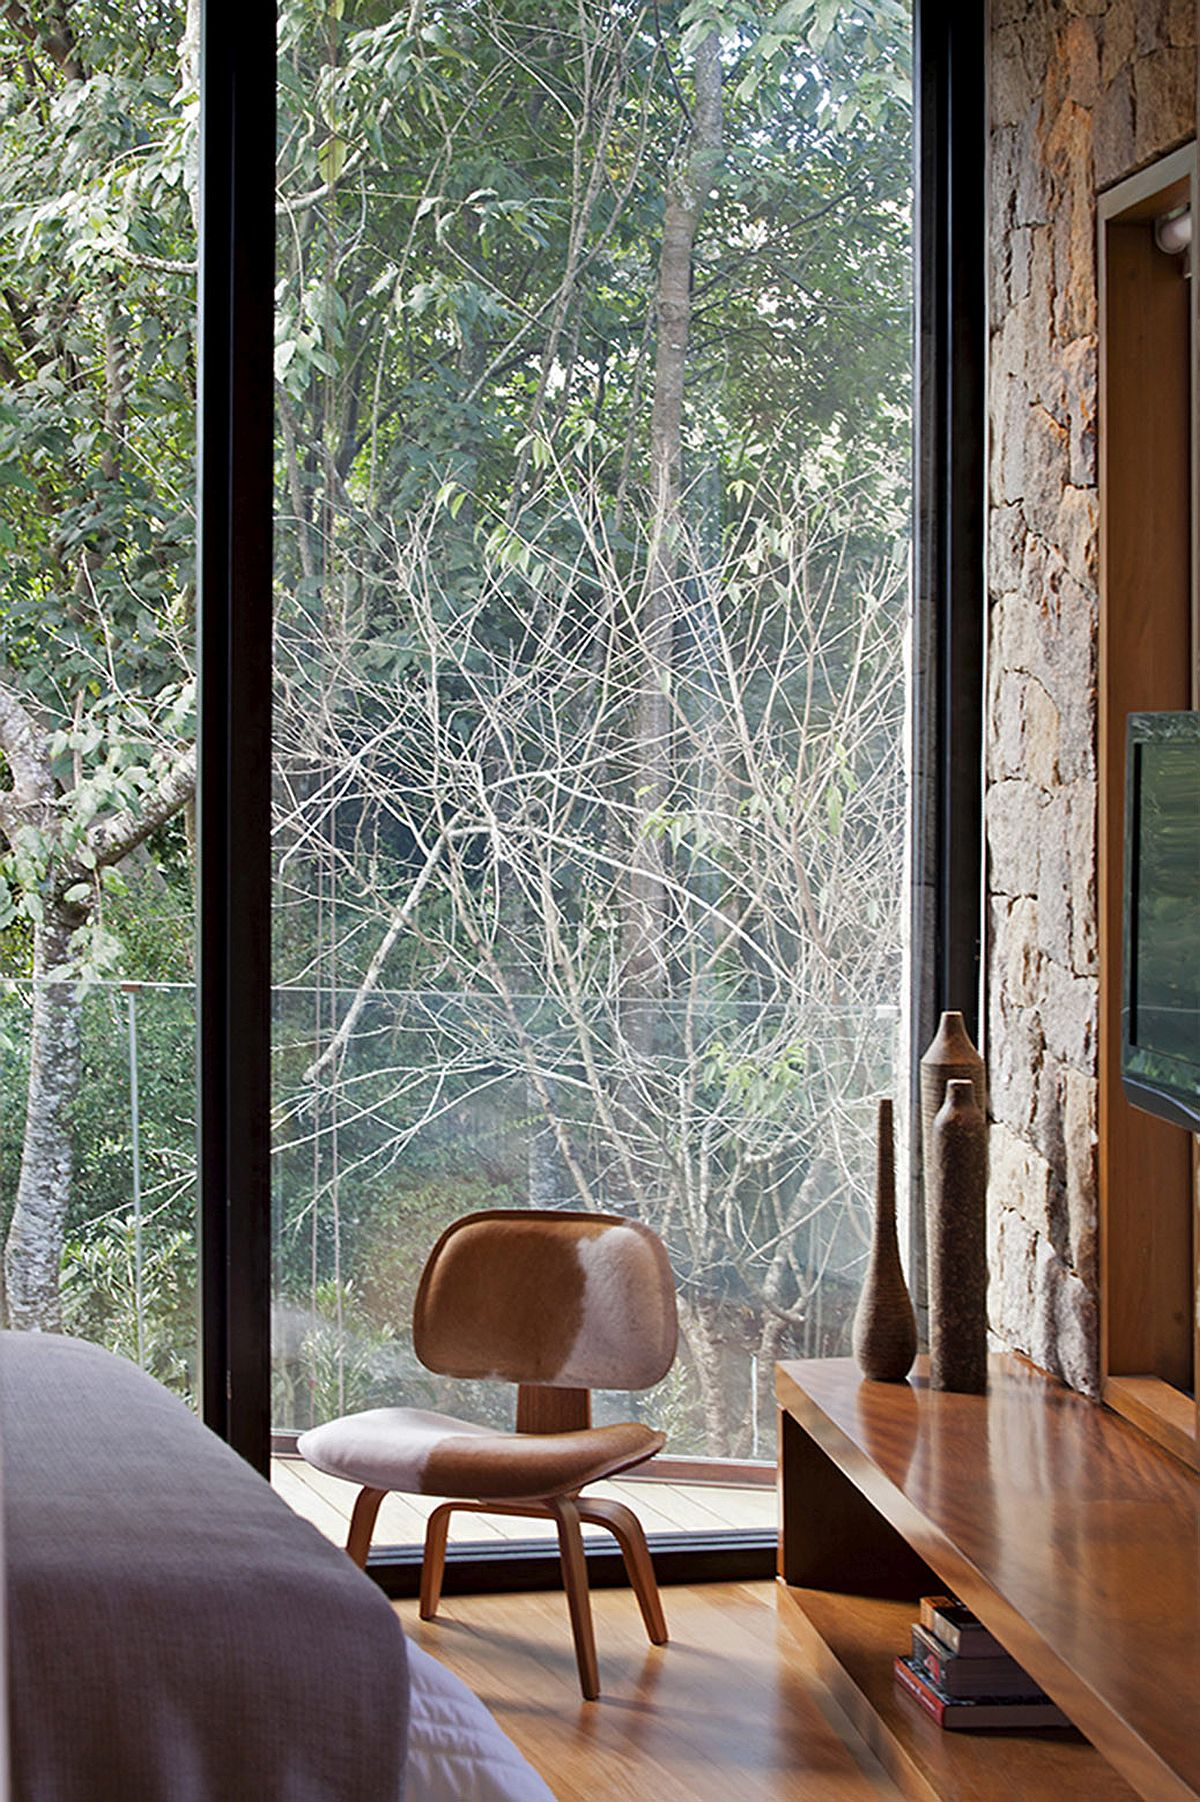 Sliding glass walls bring nature into the bedroom with ease